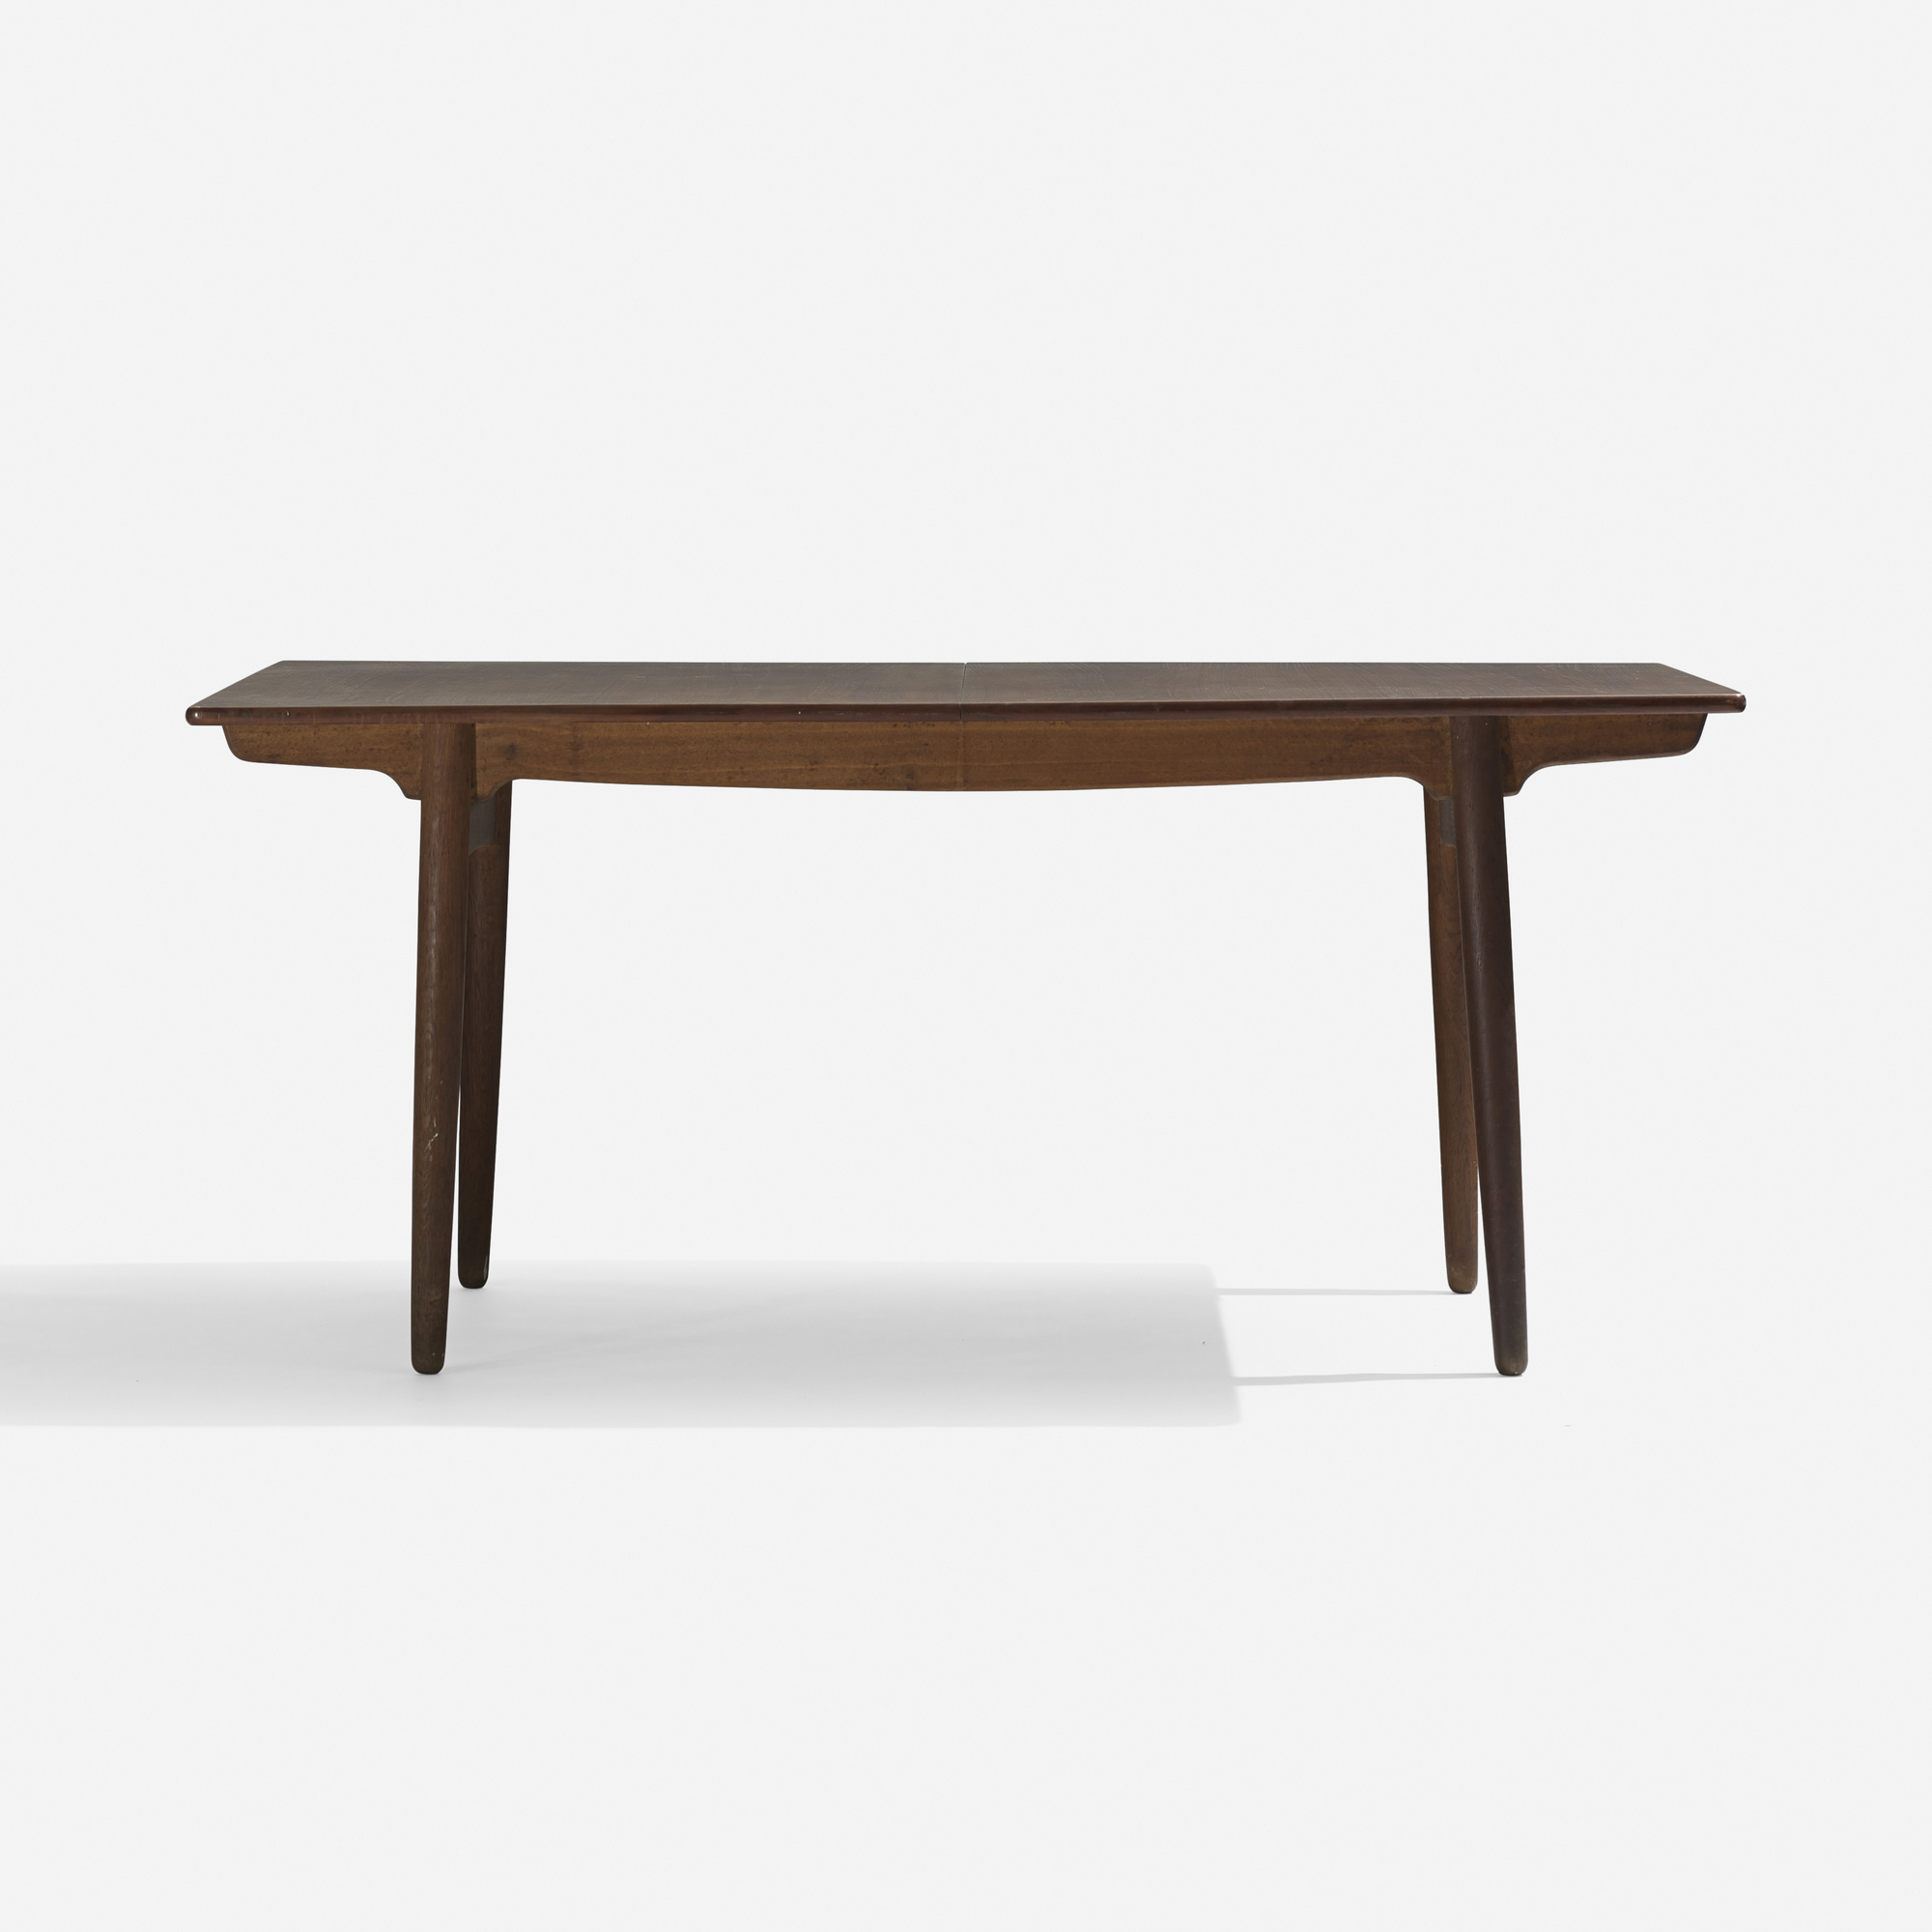 359 Hans J Wegner Dining Table, Model At310 (2 Of